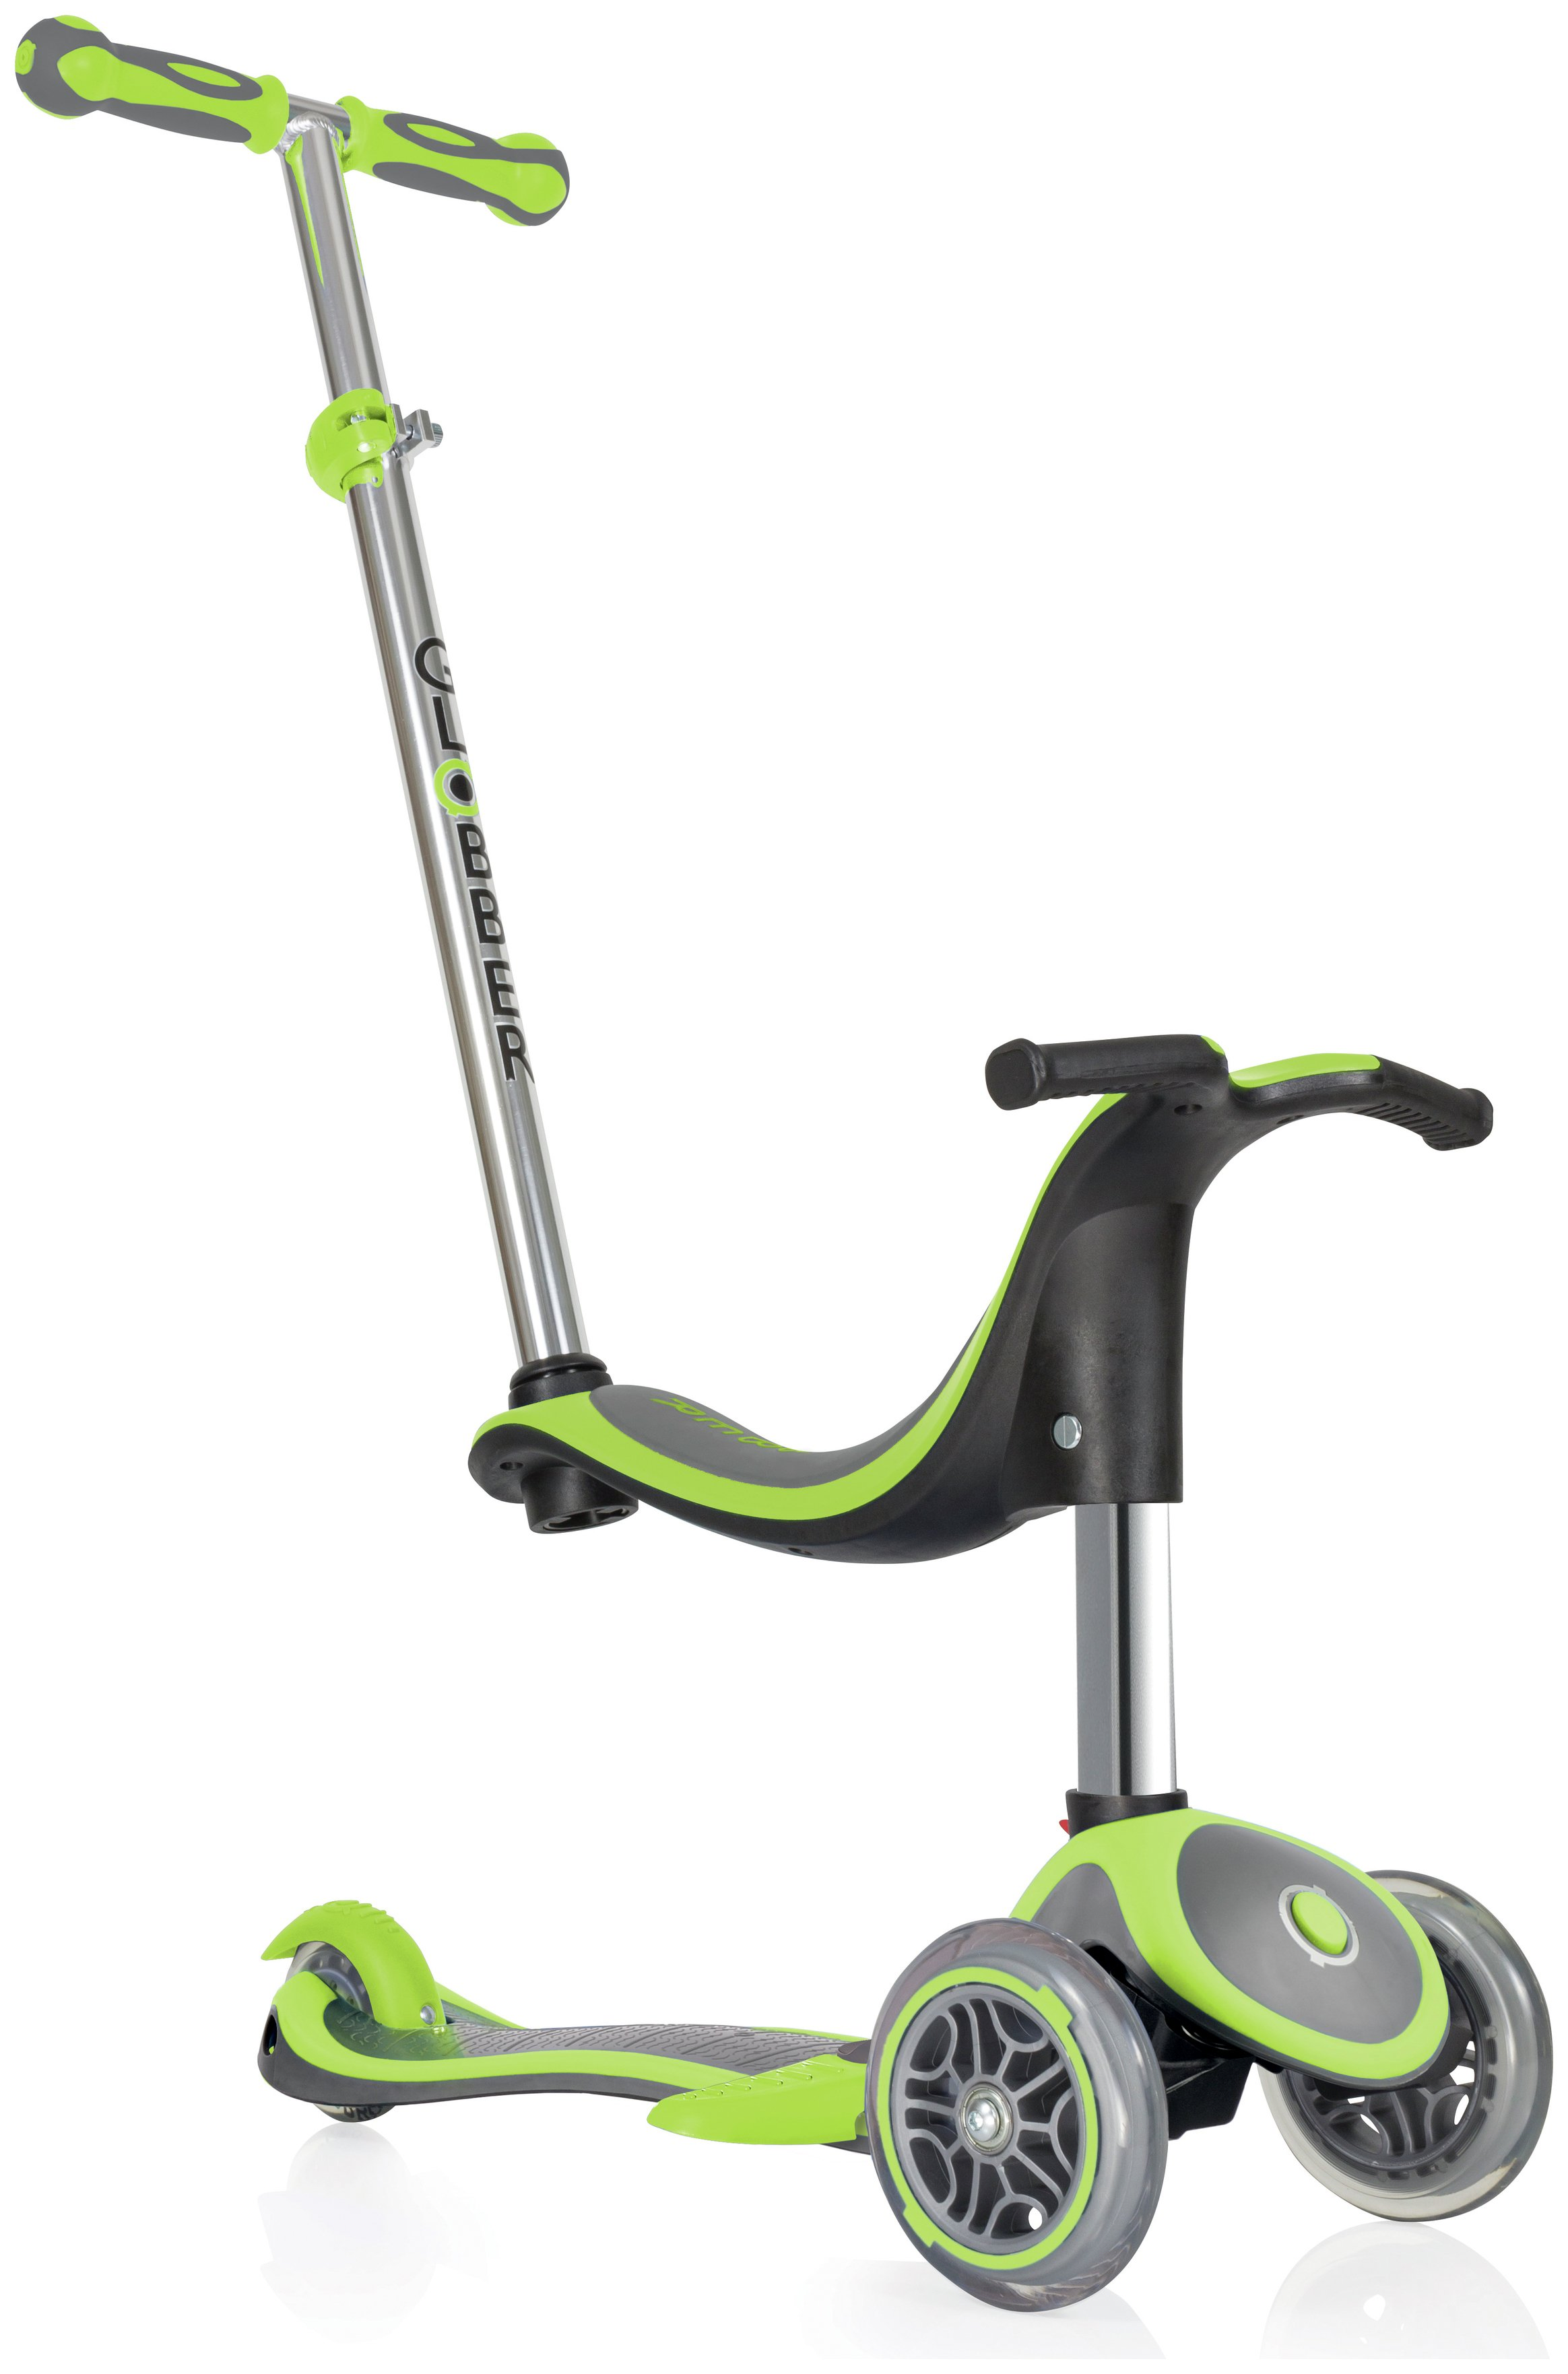 Globber Evo 4-in-1 Plus 3 Wheel Scooter - Lime Green